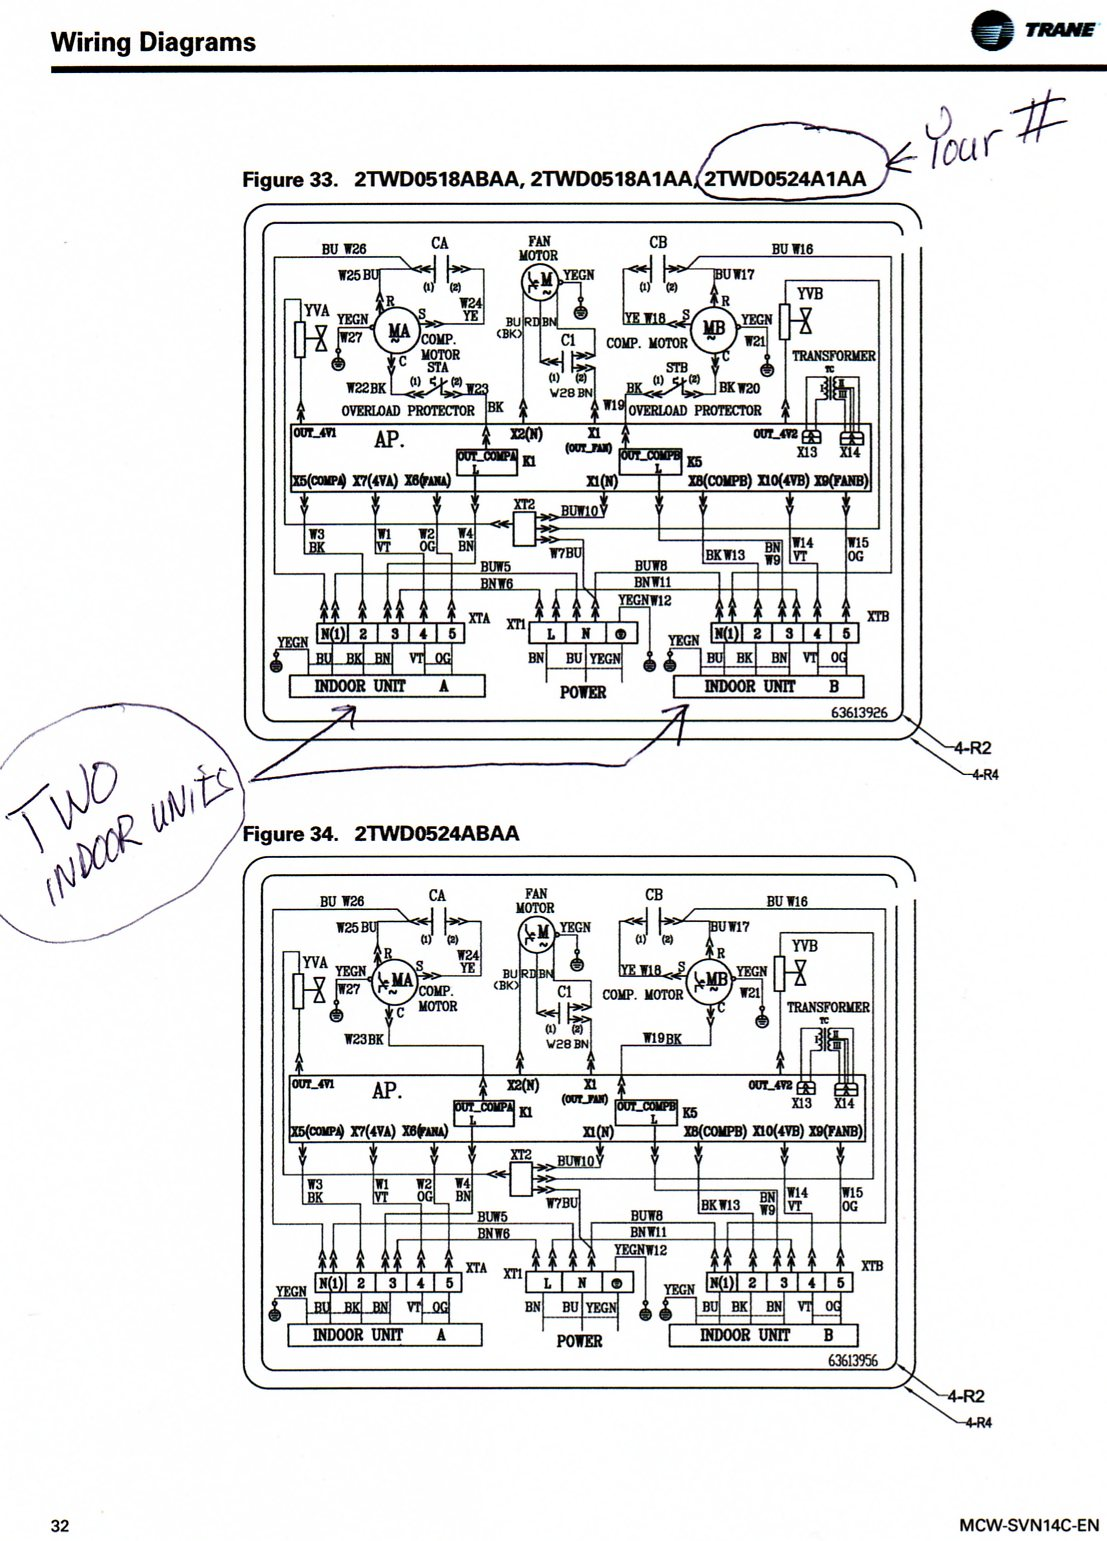 Trane Xe 900 Wiring Diagram 27 Images 2011 03 02 225647 Multi Split Hp232 How Do I Connect 2 2mww0512e1000aa To 1